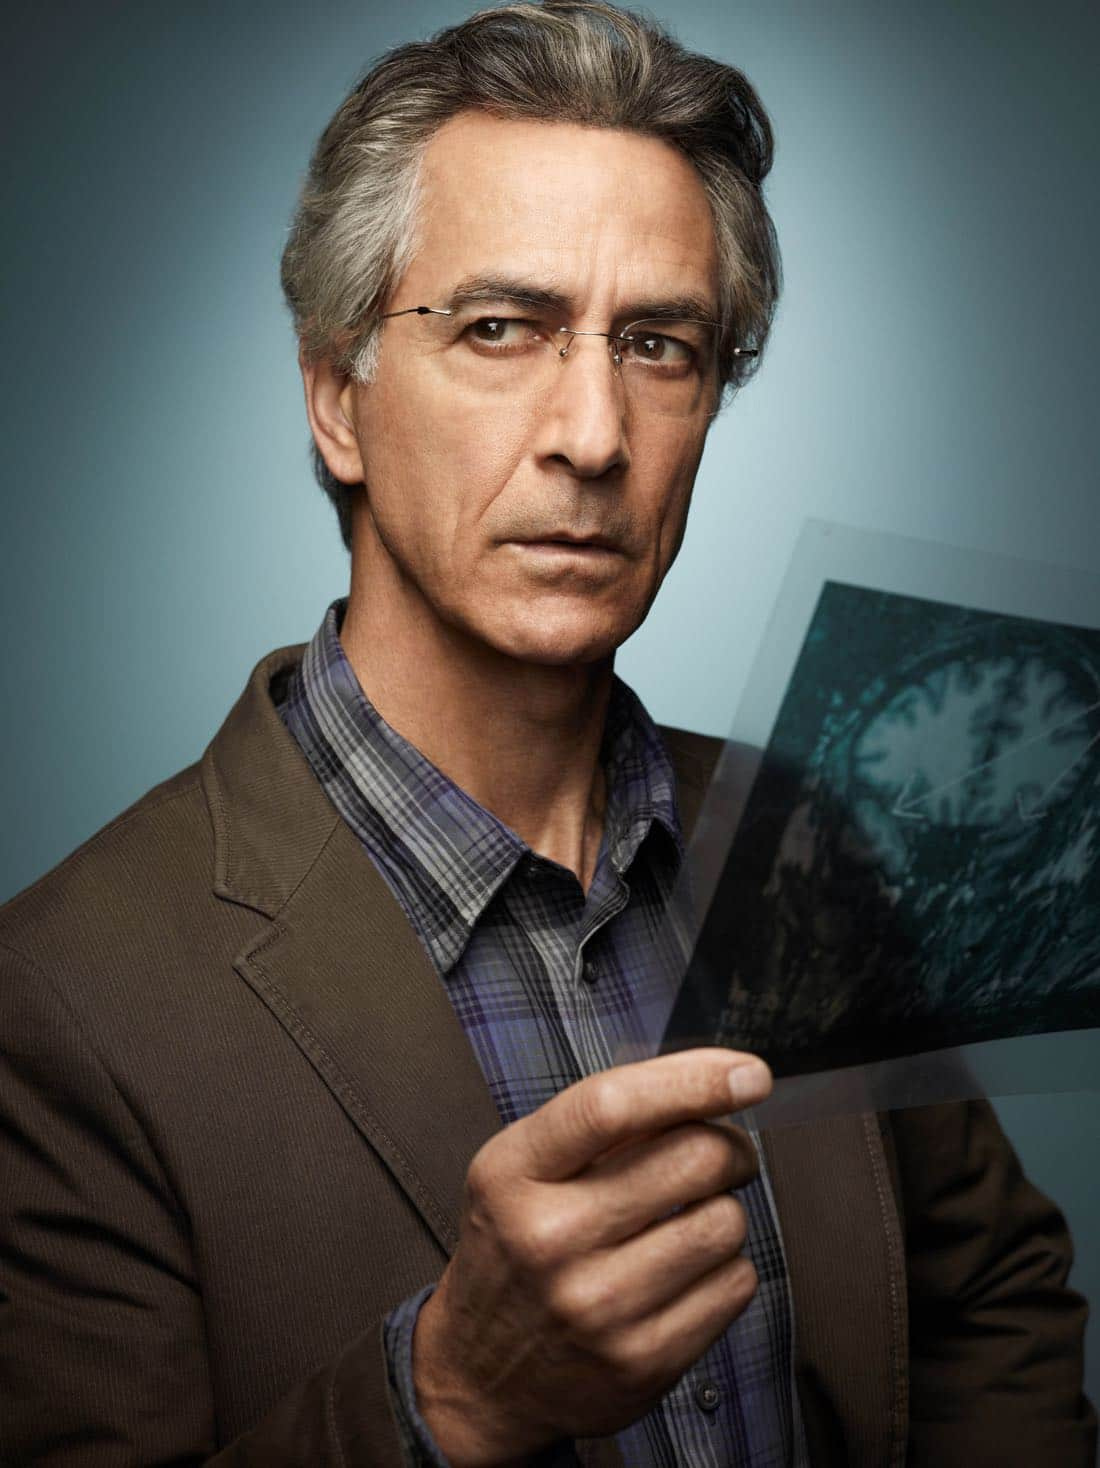 David Strathairn as Dr. Lee Rosen Alphas Season 1 On Syfy